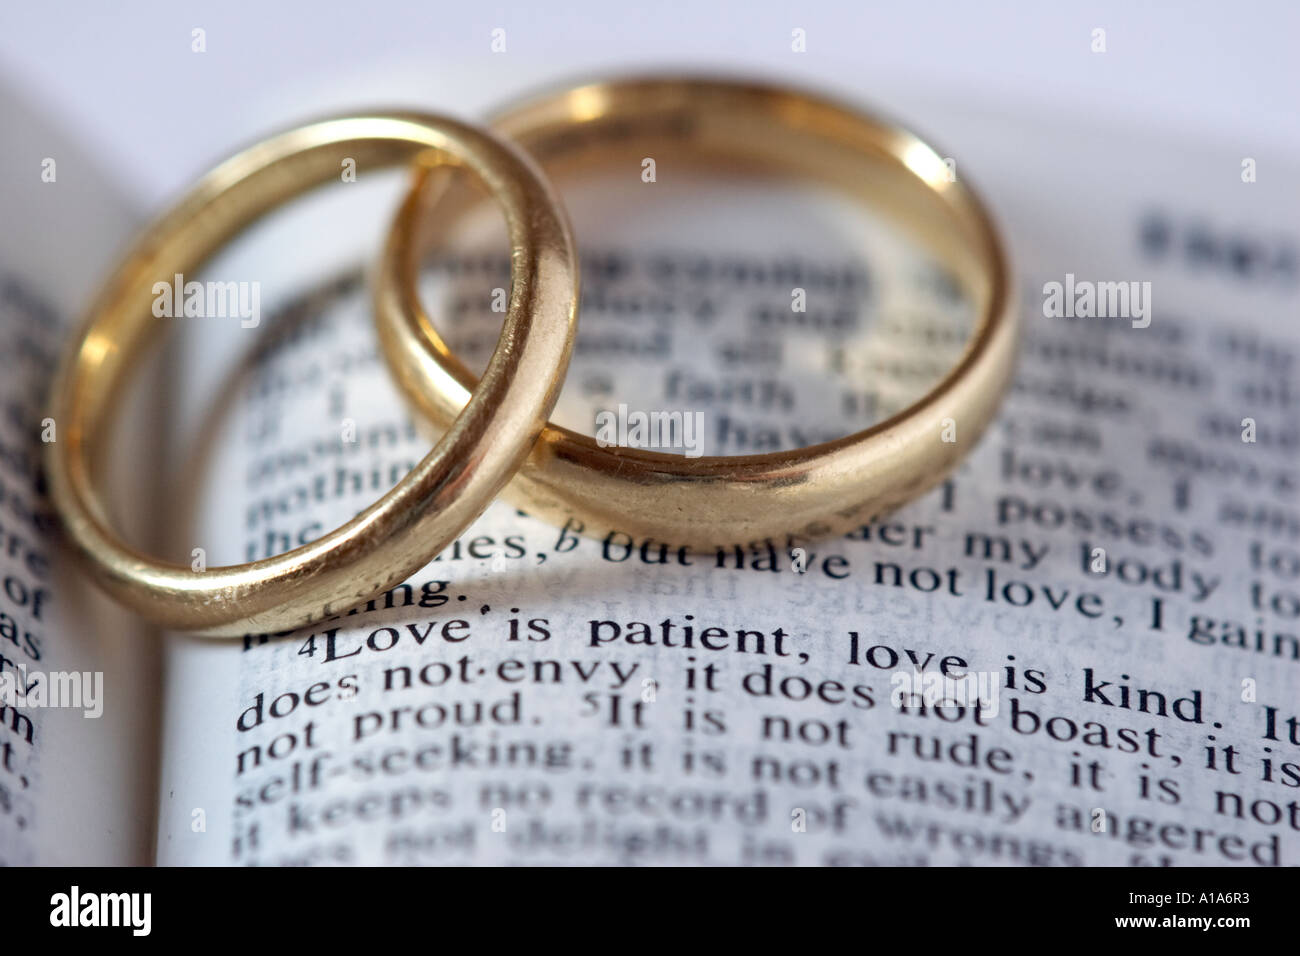 Wedding rings with Bible verse Stock Photo Royalty Free Image